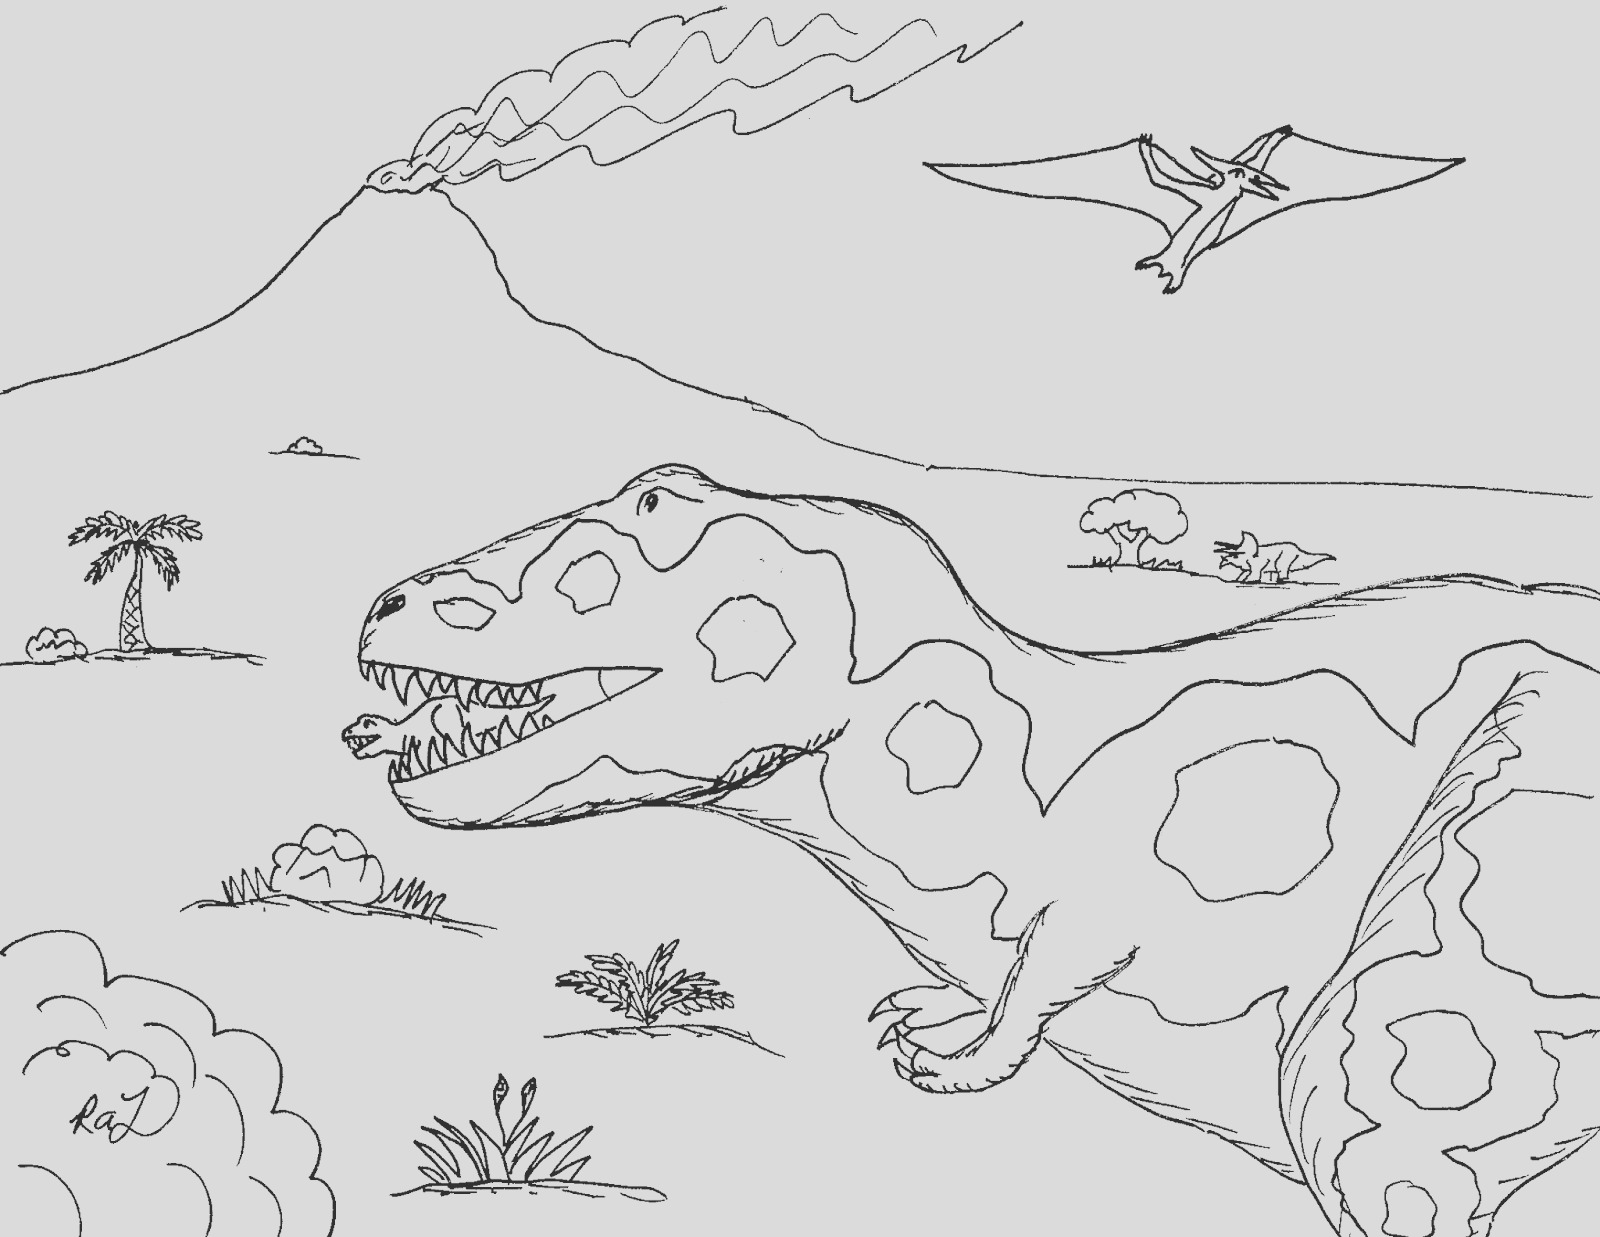 tyrannosaurus rex mothers for mothers